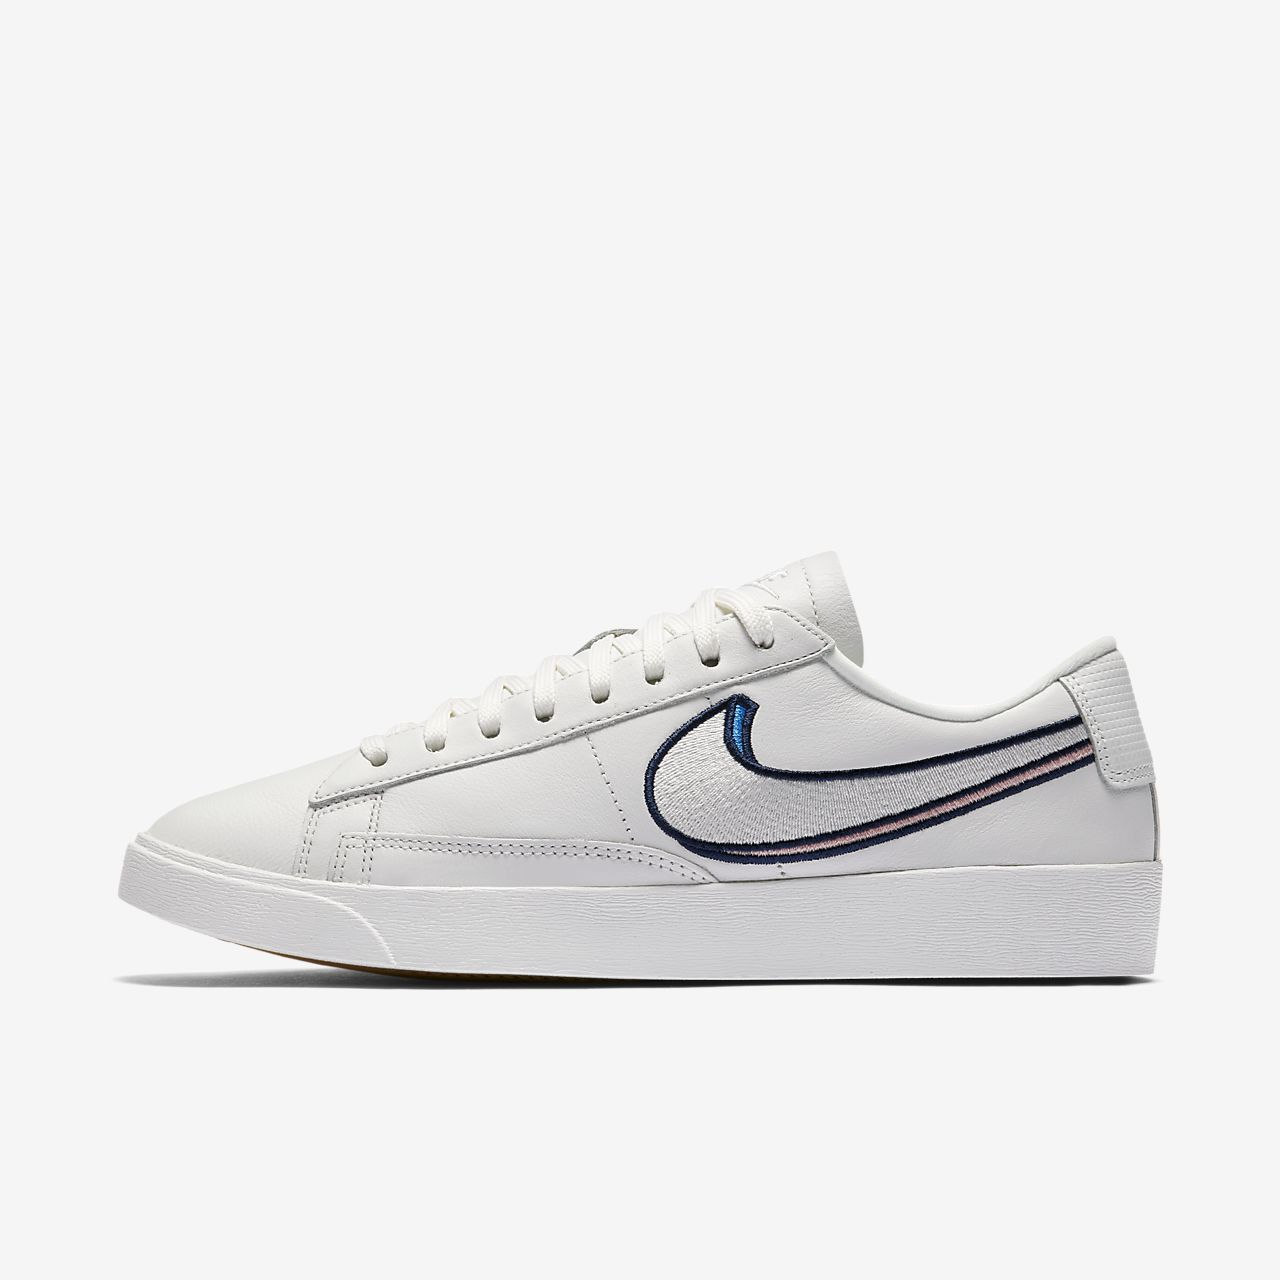 buy online c7417 6ba93 Nike Blazer Low LX Women s Shoe